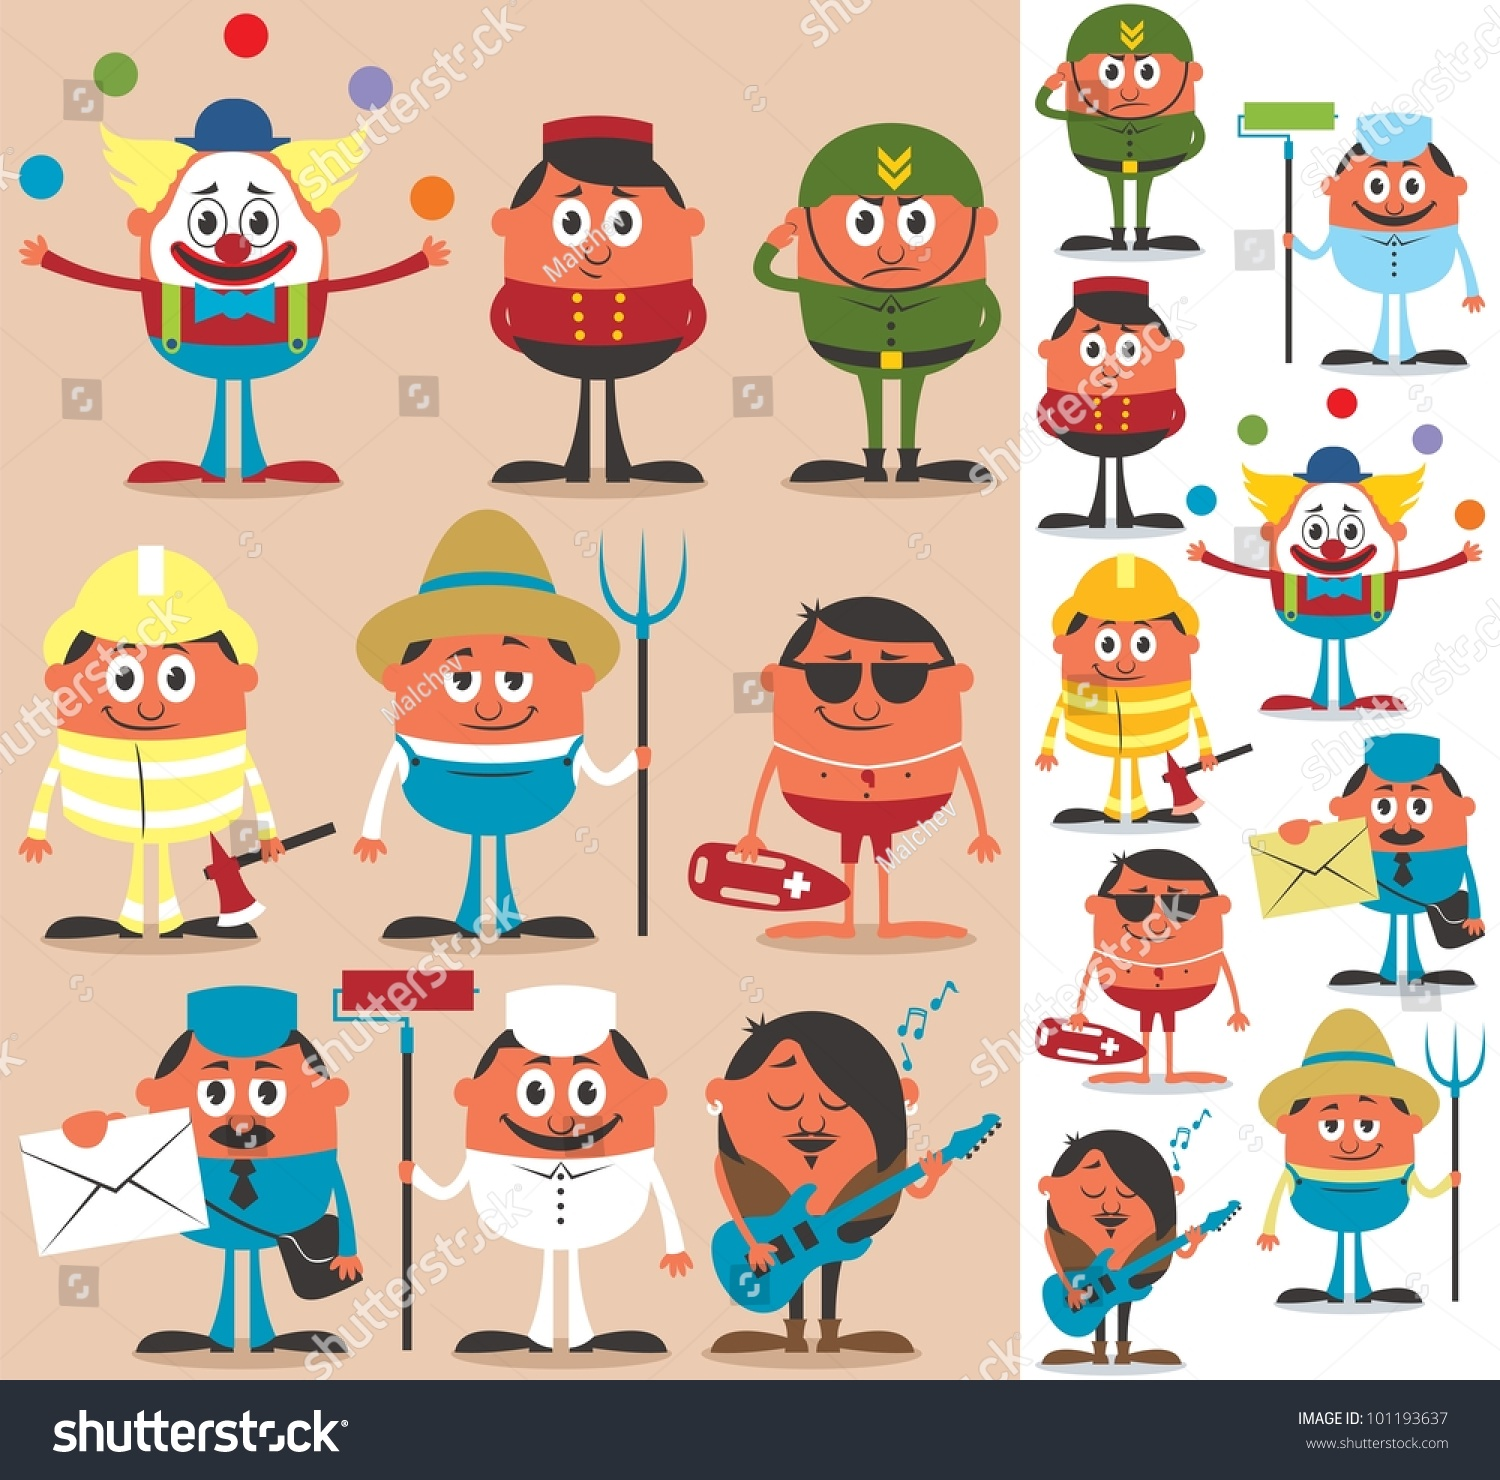 Occupations 2 Set Cartoon Characters Different Stock Vector 101193637  Shutterstock